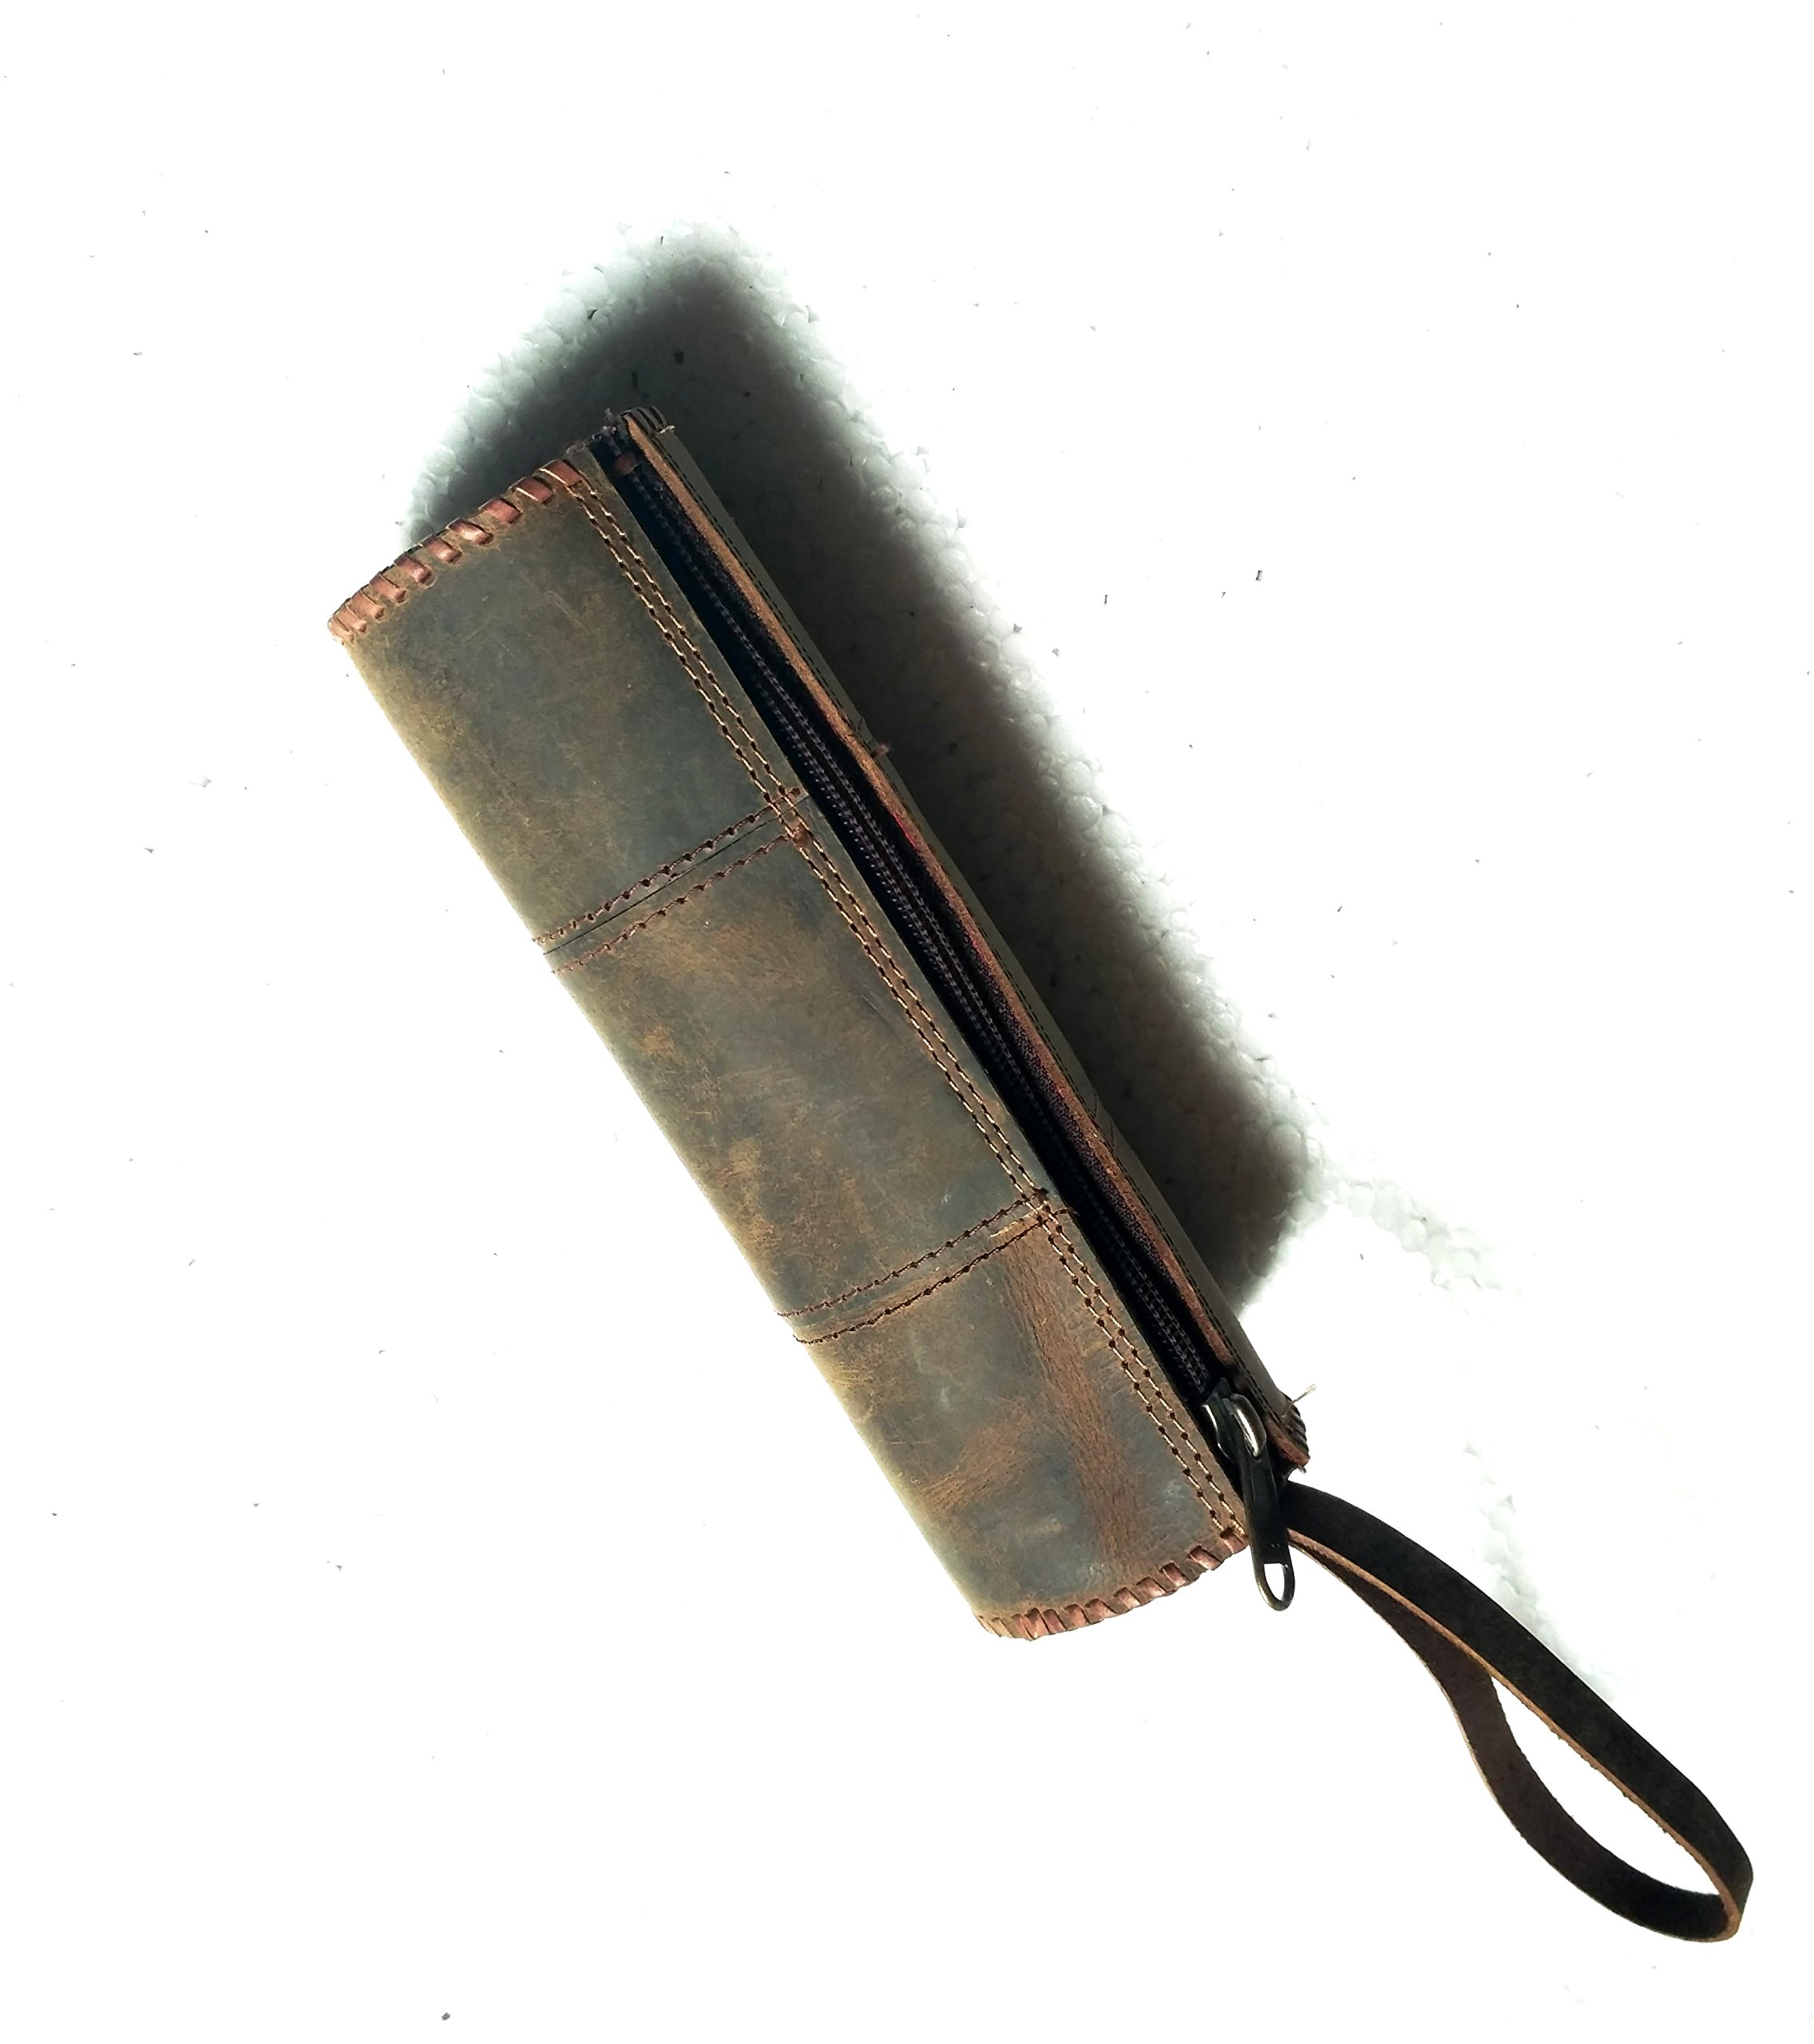 Genuine Leather Stationery Pencil Pen Case Art Pouch Office Uni College Smart Everyday Vintage Unisex Brown by Rust Leather (Image #1)